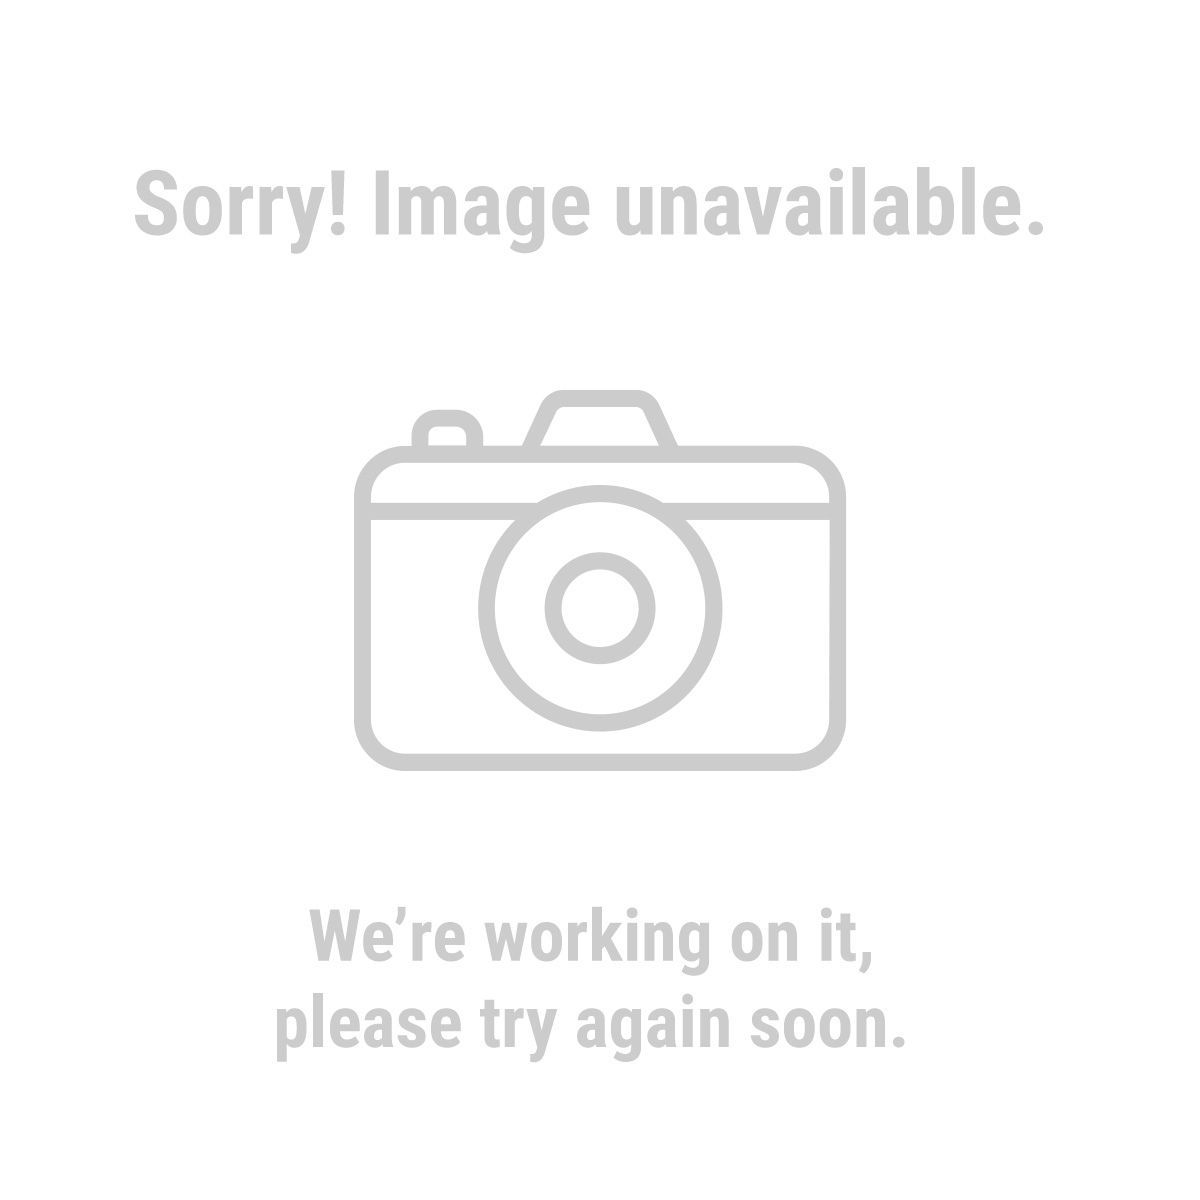 Western Safety 66822 Smoke Lens Safety Glasses